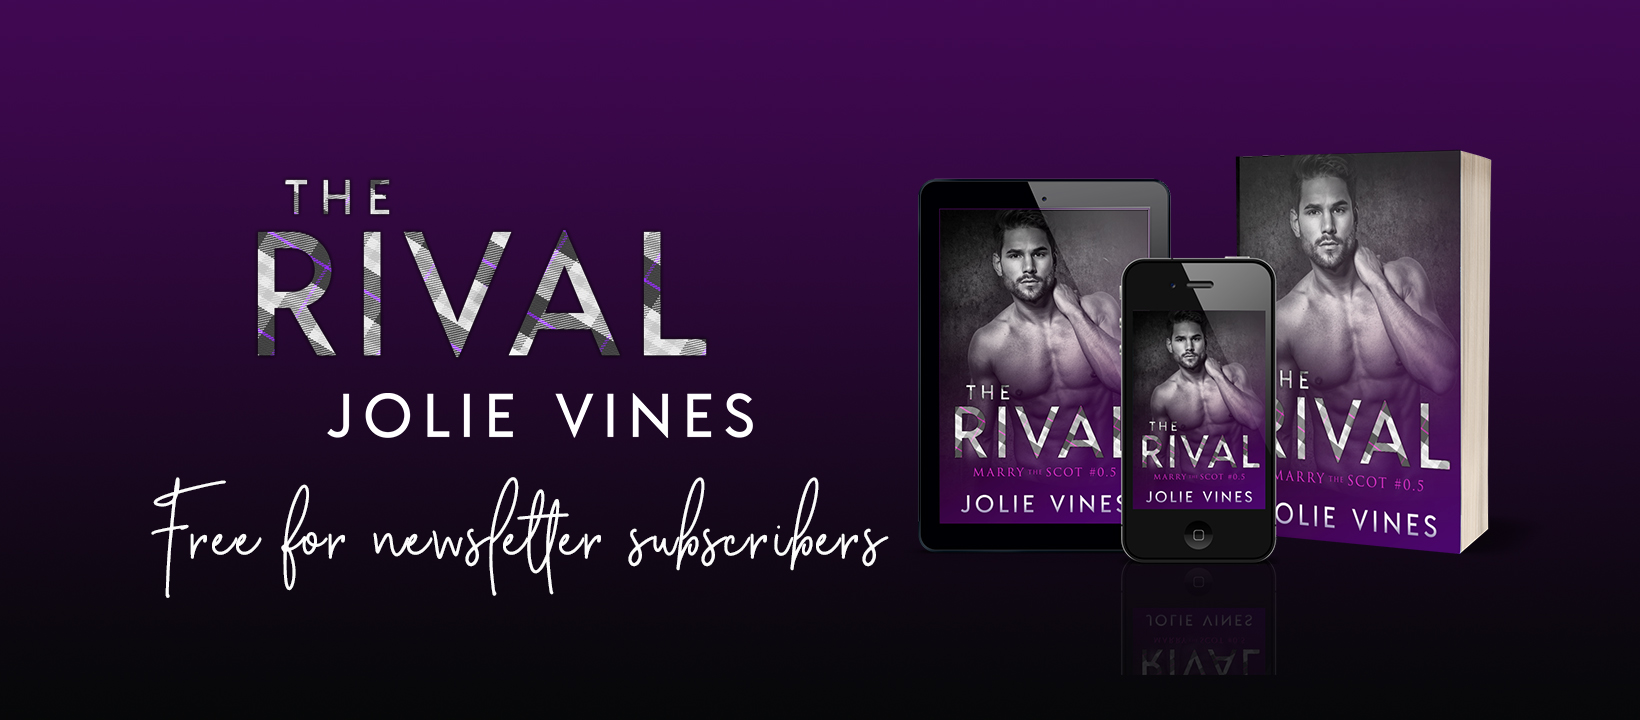 TheRival facebook banner.jpg